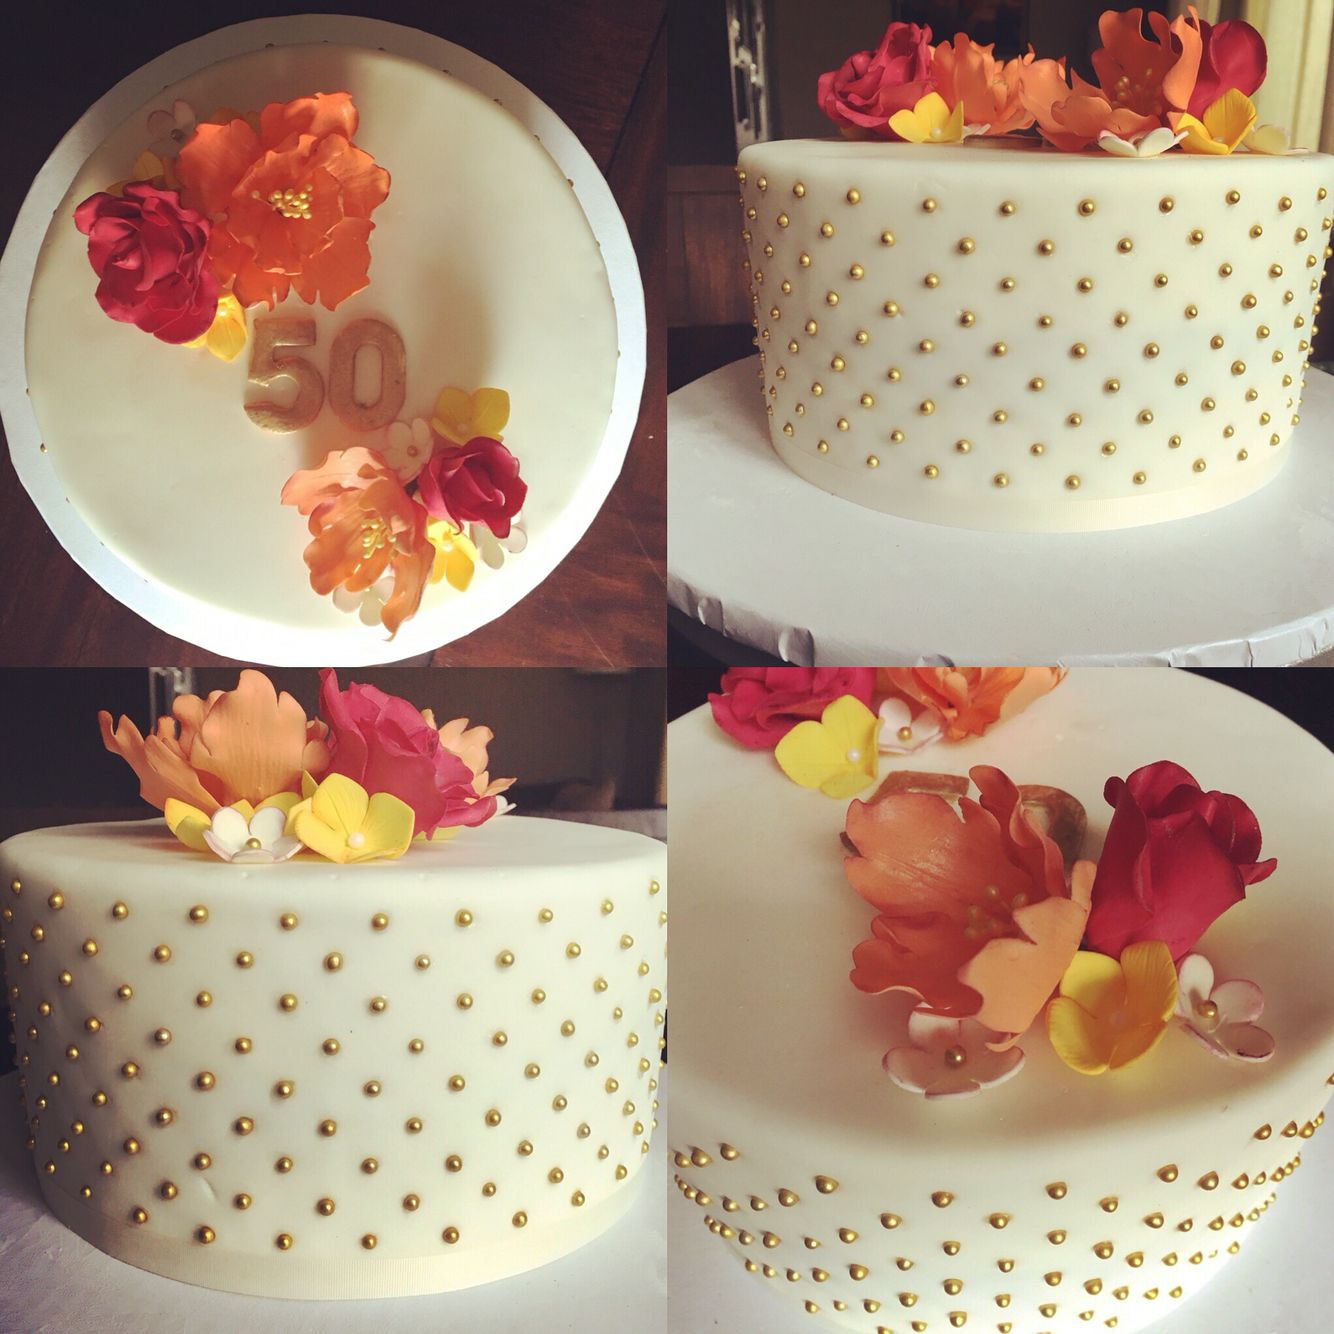 50th birthday cake bright gumpaste flowers flowers with gold